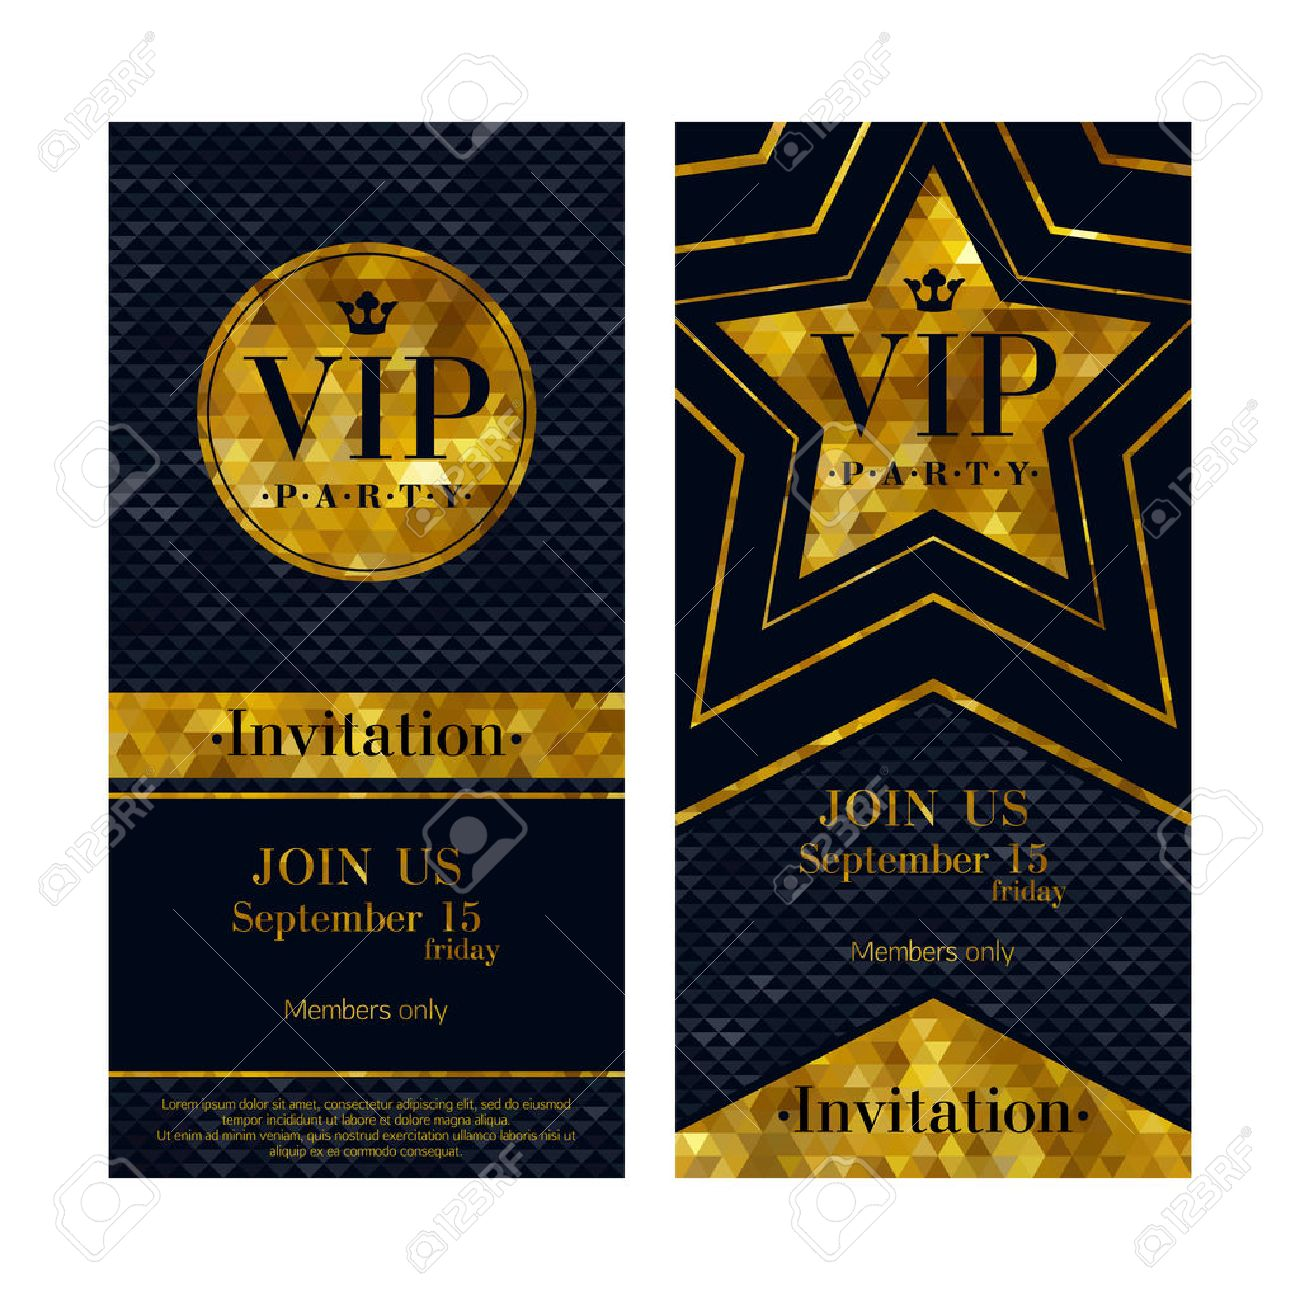 Invitation card stock photos royalty free invitation card images vip party premium invitation cards posters flyers black and golden design template set circle stopboris